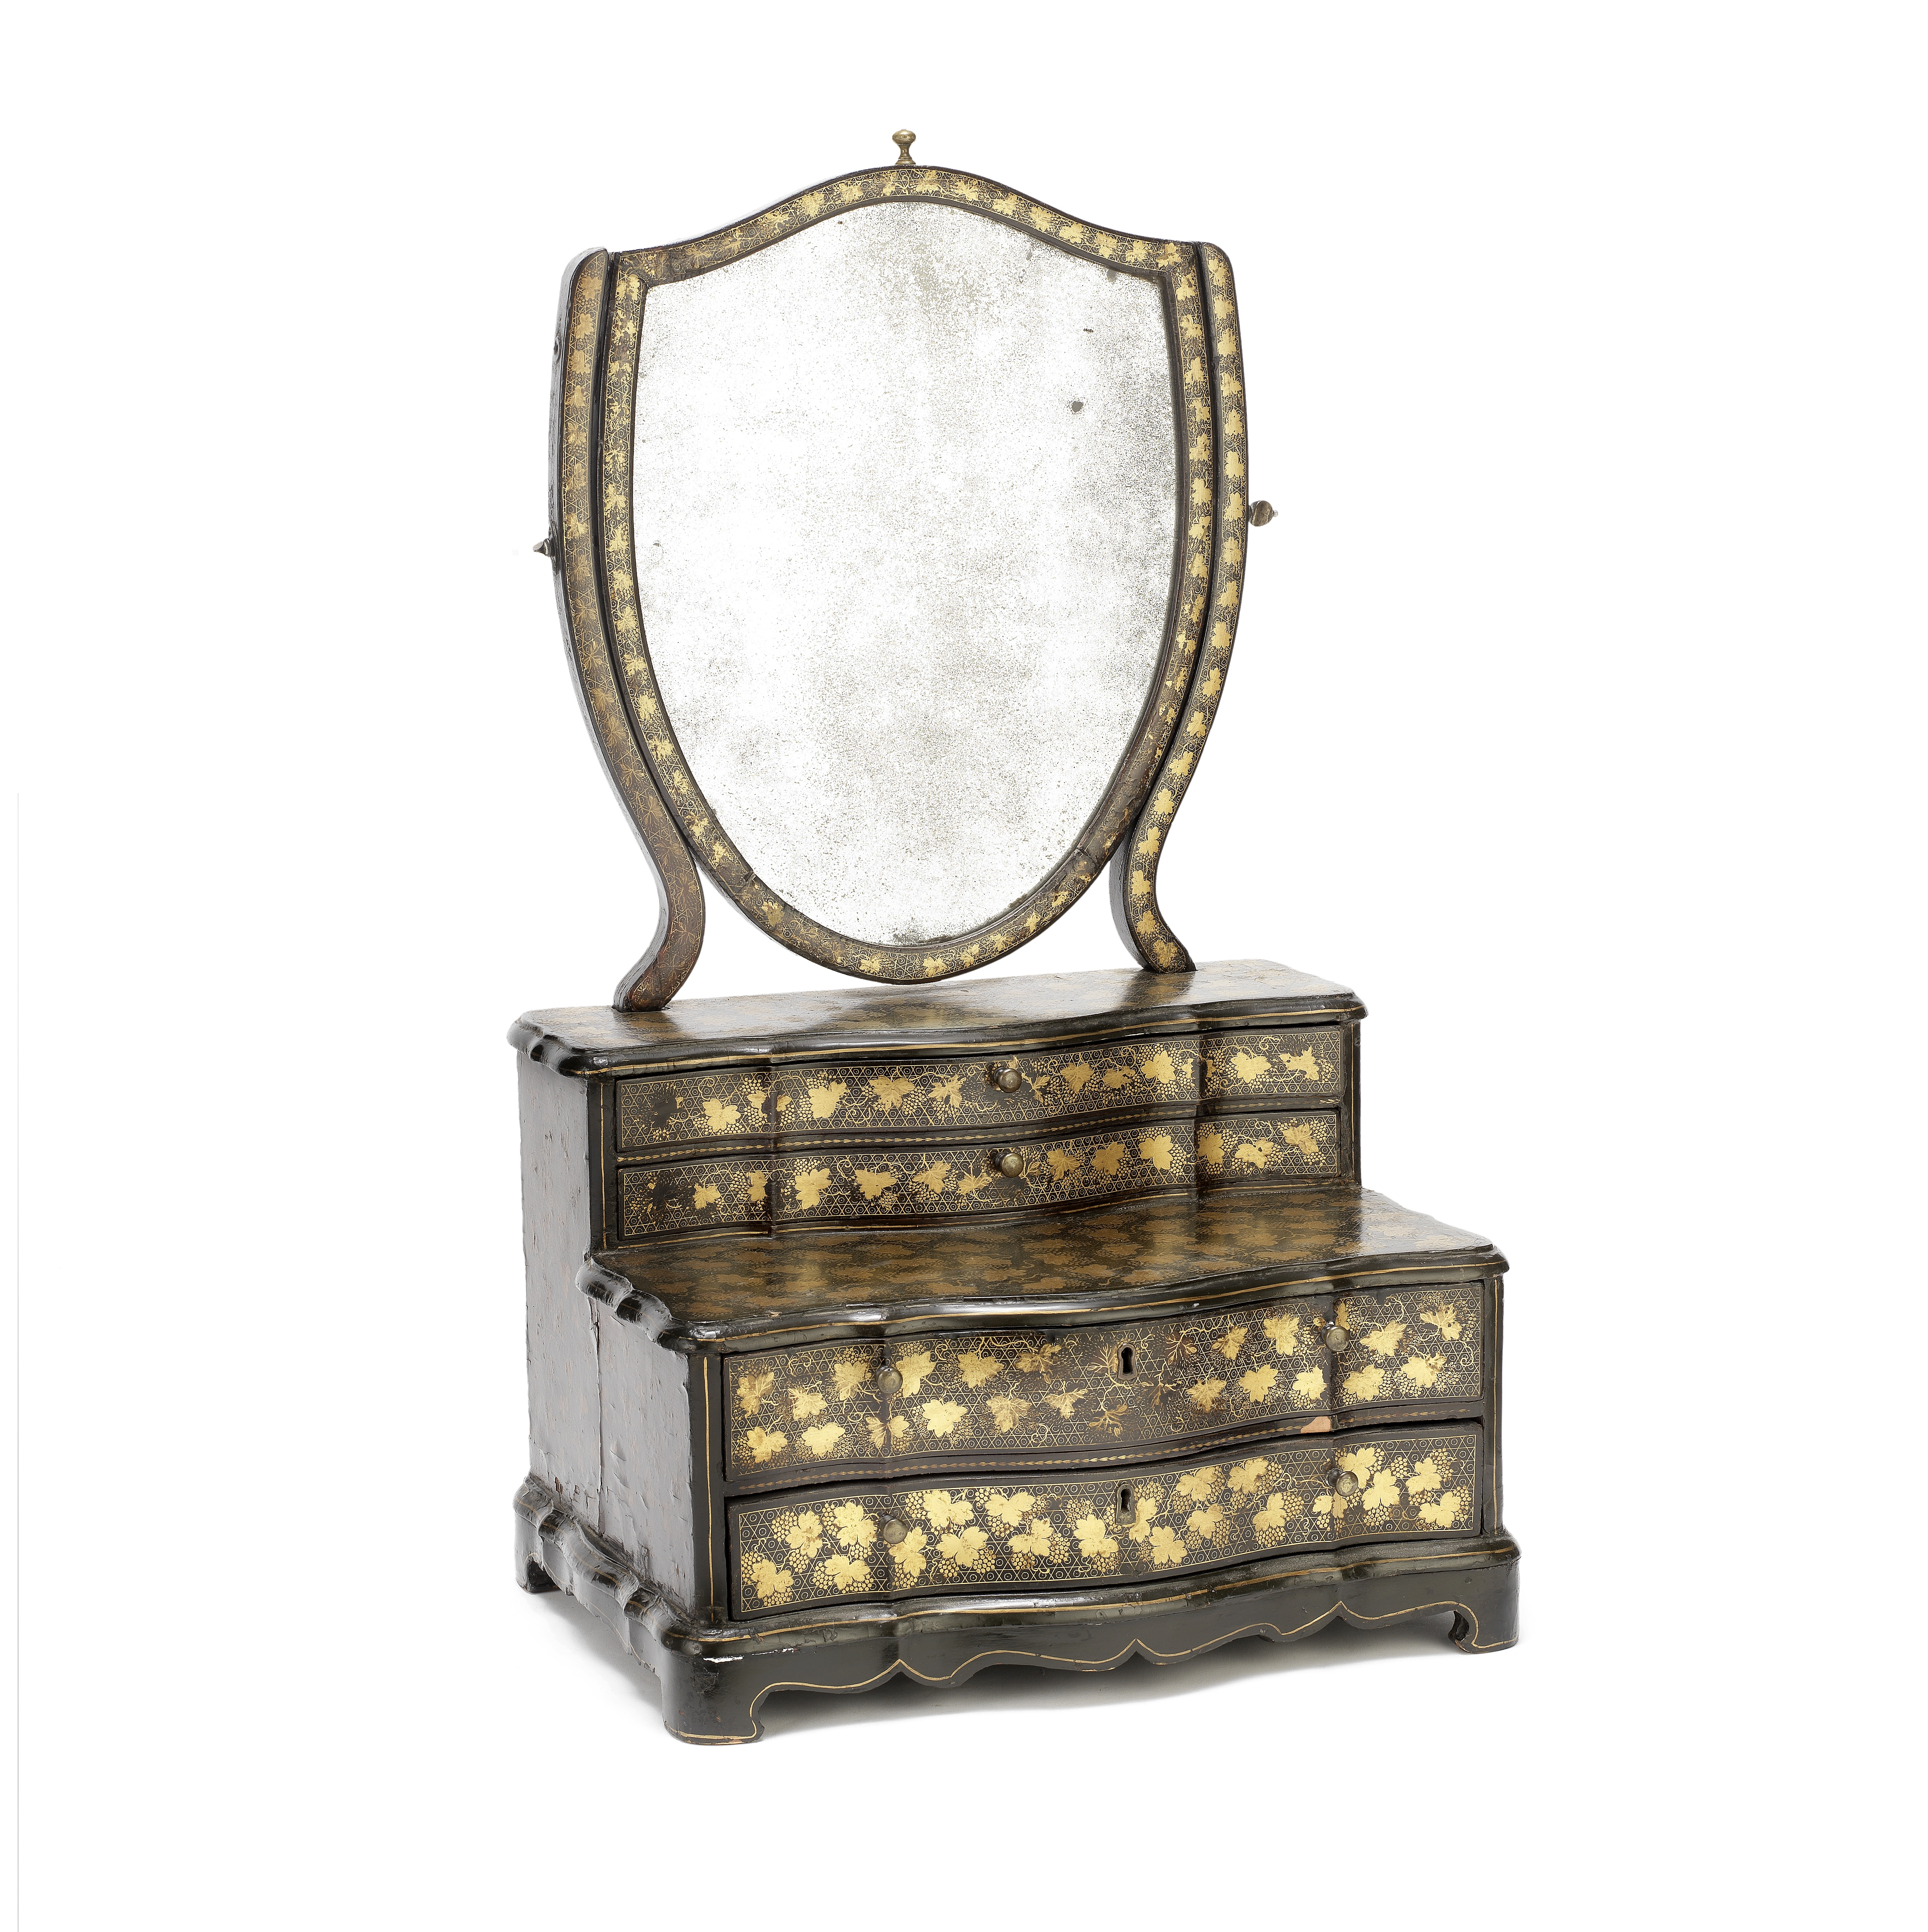 AN EXPORT BLACK LACQUER AND GILT-DECORATED MIRROR STAND Early 19th century